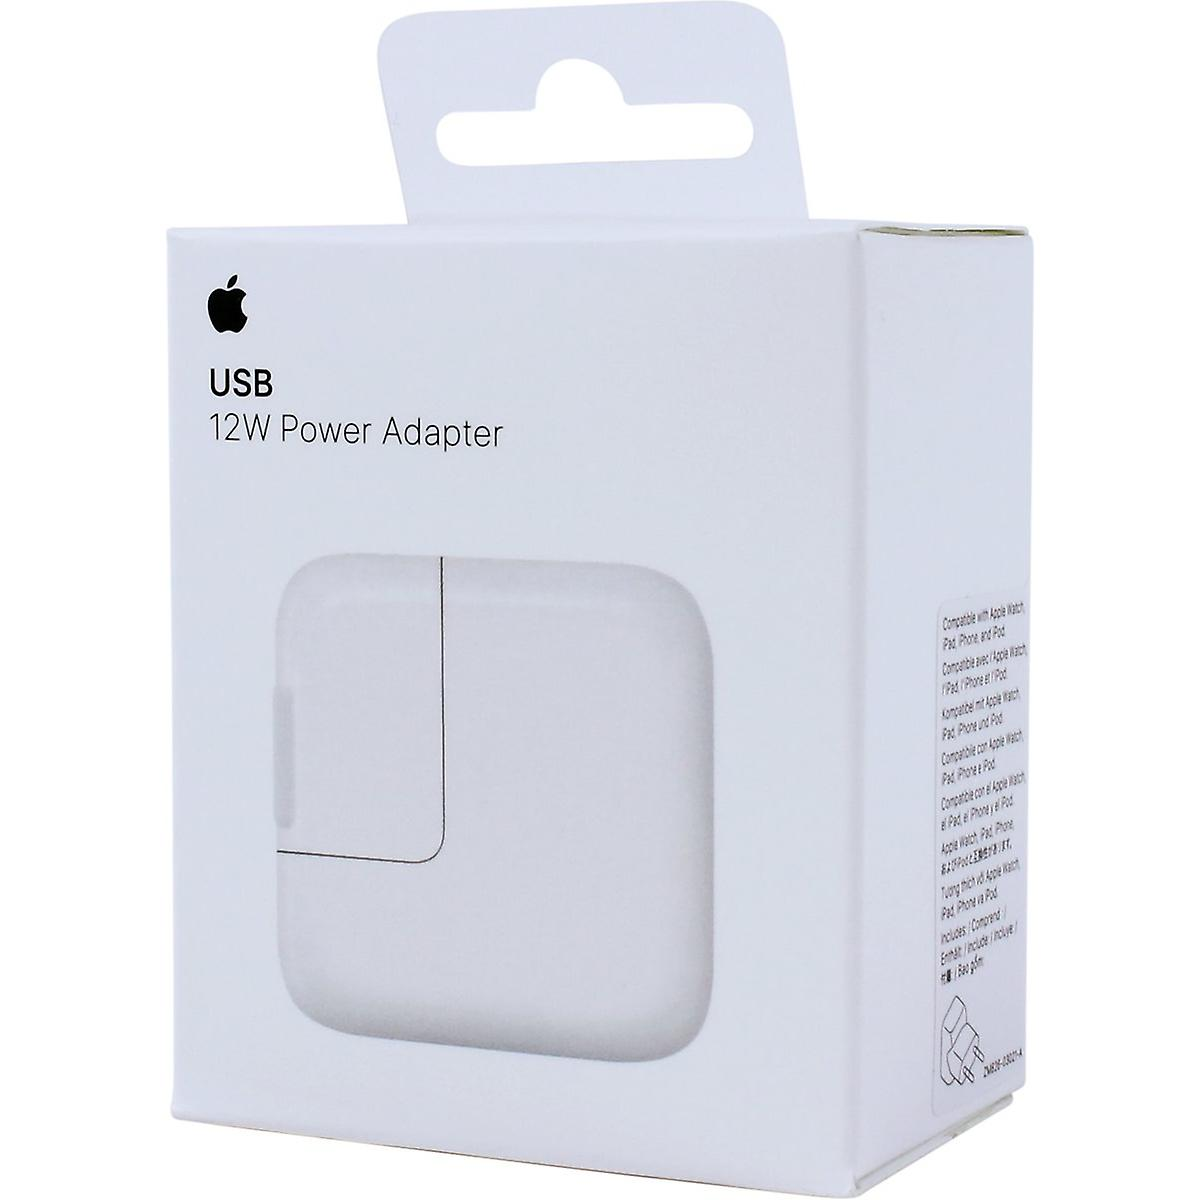 Apple 12-Watt USB Power Adapter for iPad